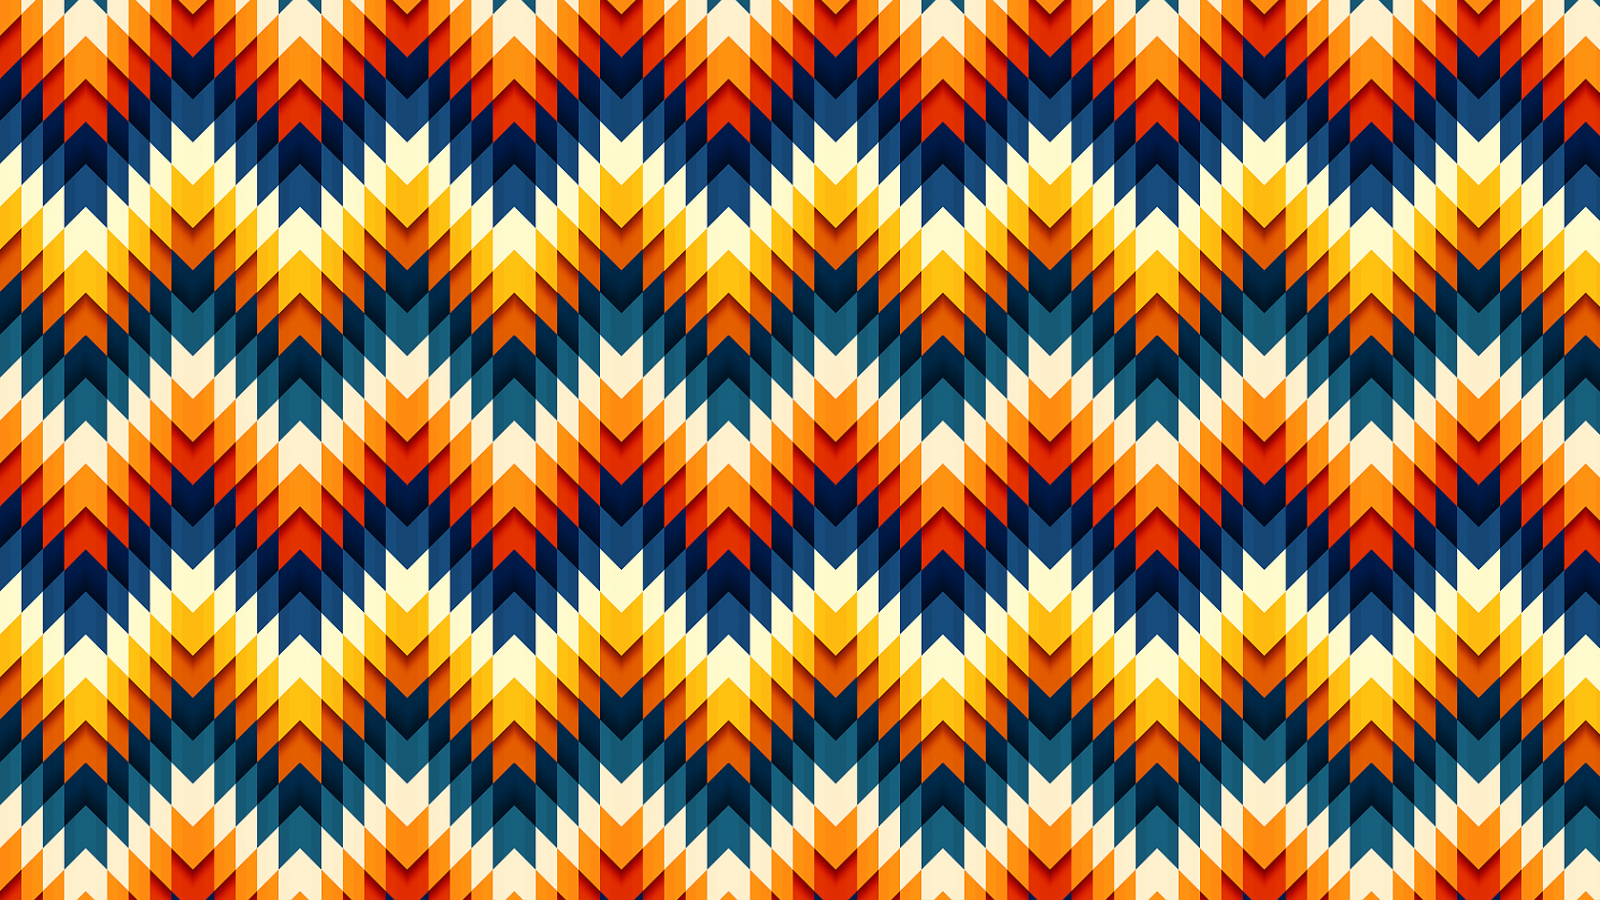 Free download 80s Patterns Triangles 80s Wallpaper Patterns 90s